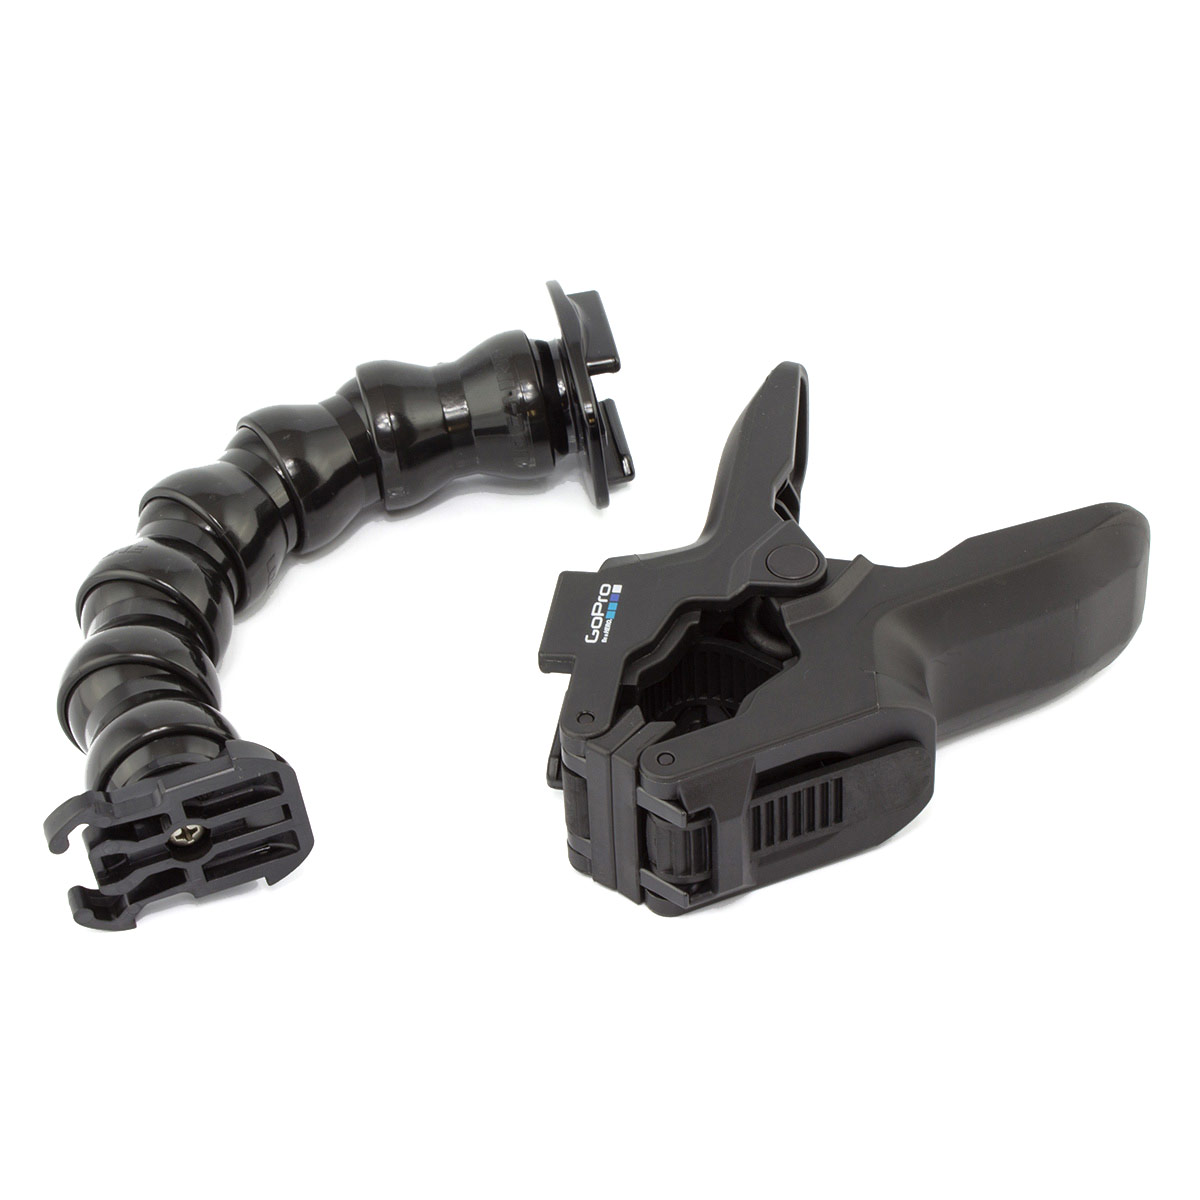 Gopro Jaws Flexible Clamp Mount For Mounting Onto Poles